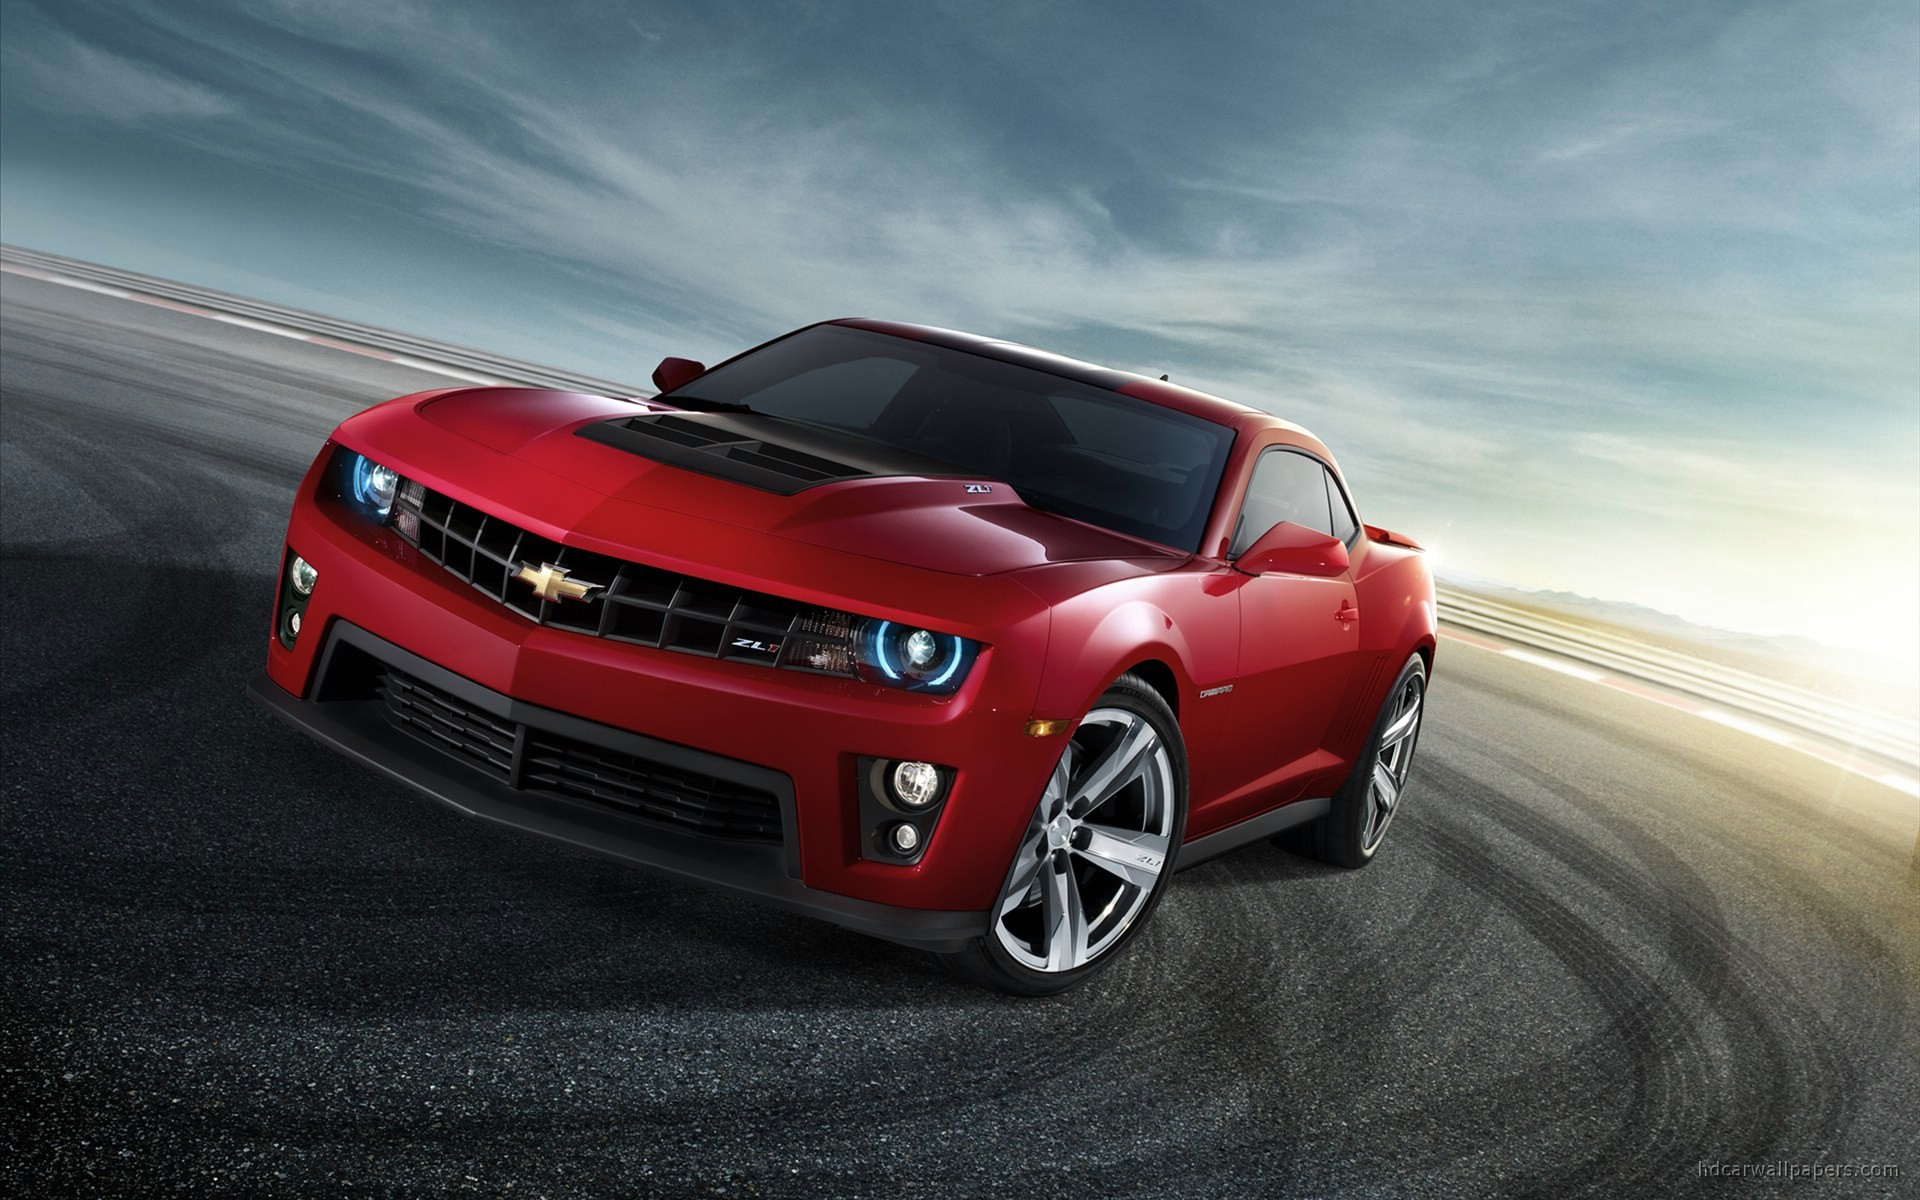 2012 Chevrolet Camaro ZL1 Wallpaper in 1920x1200 Resolution 1920x1200